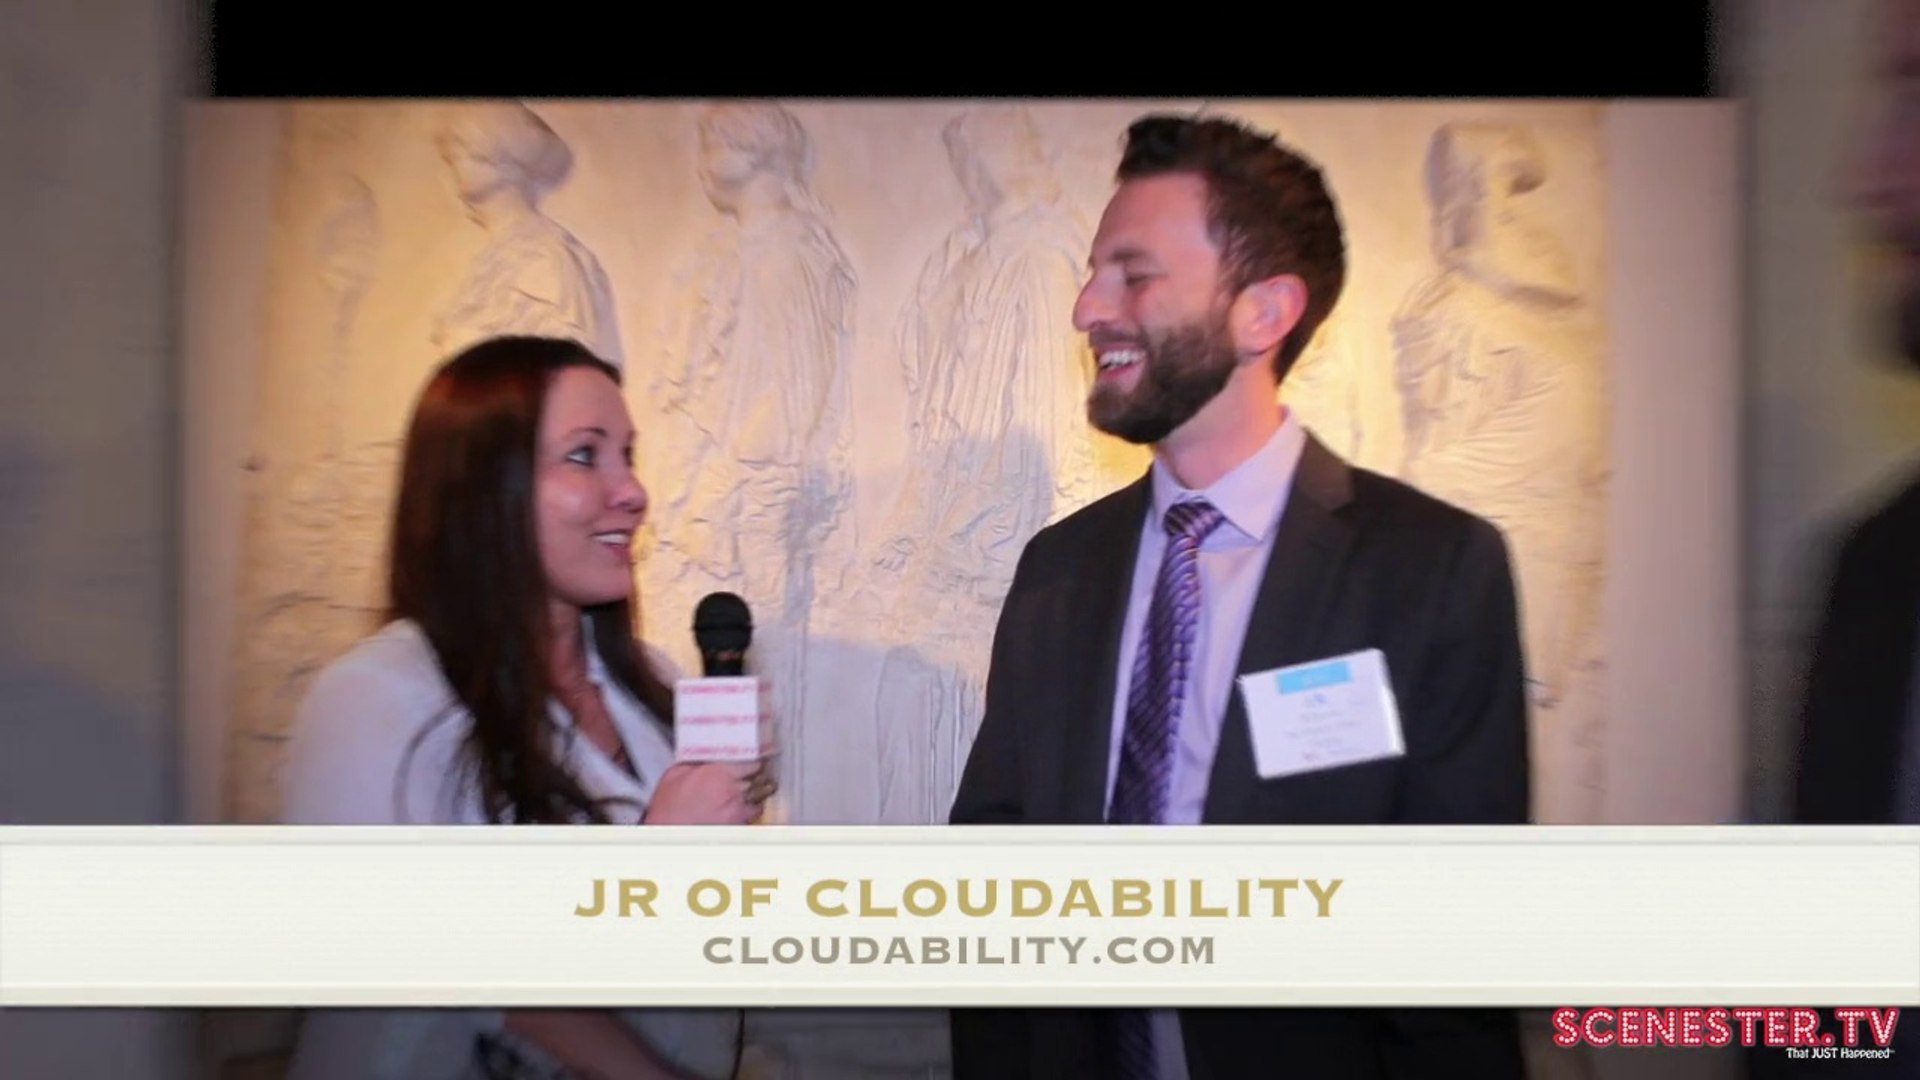 CLOUDABILITY Interview with JR on Cloud $ Management and Portland Tech Scene at Oregon Tech Awards!